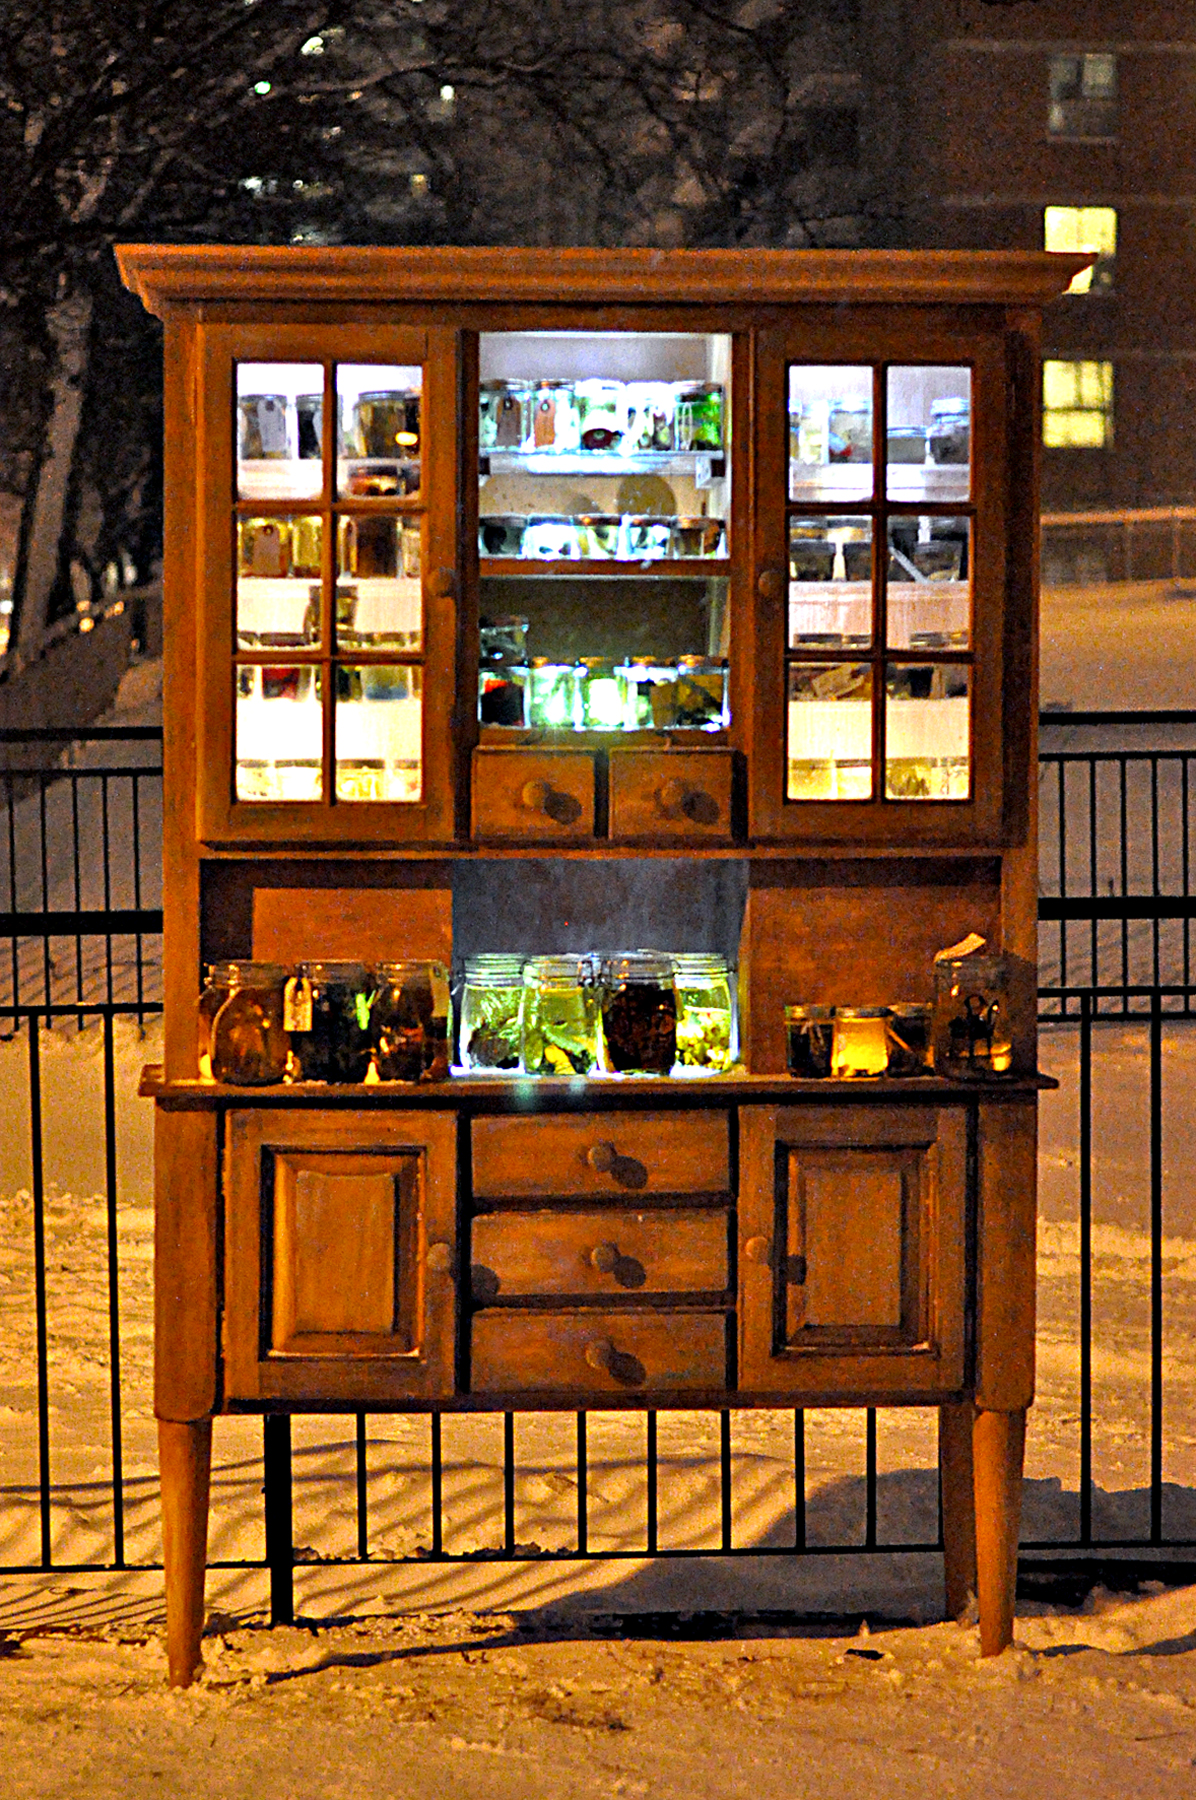 ALIMW_13_Cabinet_In the Snow.jpg